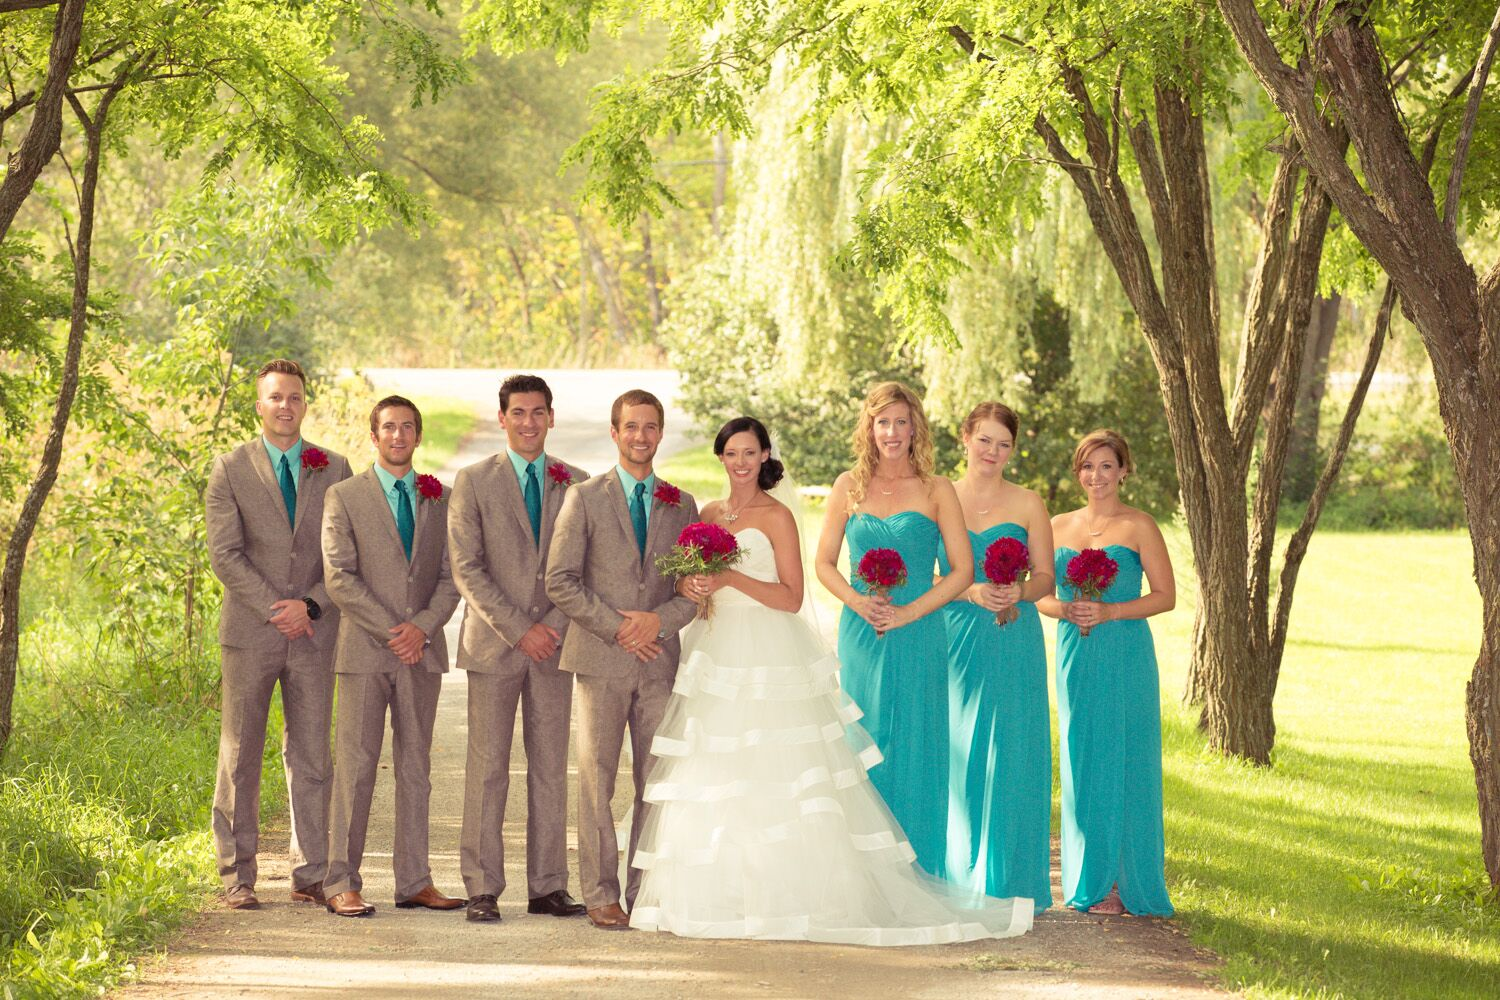 Tan And Turquoise Wedding Party Attire. Does Your Living Room And Dining Room Have To Match. Living Room Textile Products. Diy Living Room Arrangements. Wine Coloured Living Room Accessories. Living Room Design Sketch. Living Room En Español Significado. Modular Living Room Furniture Systems. The Living Room Newcastle Valentines Menu